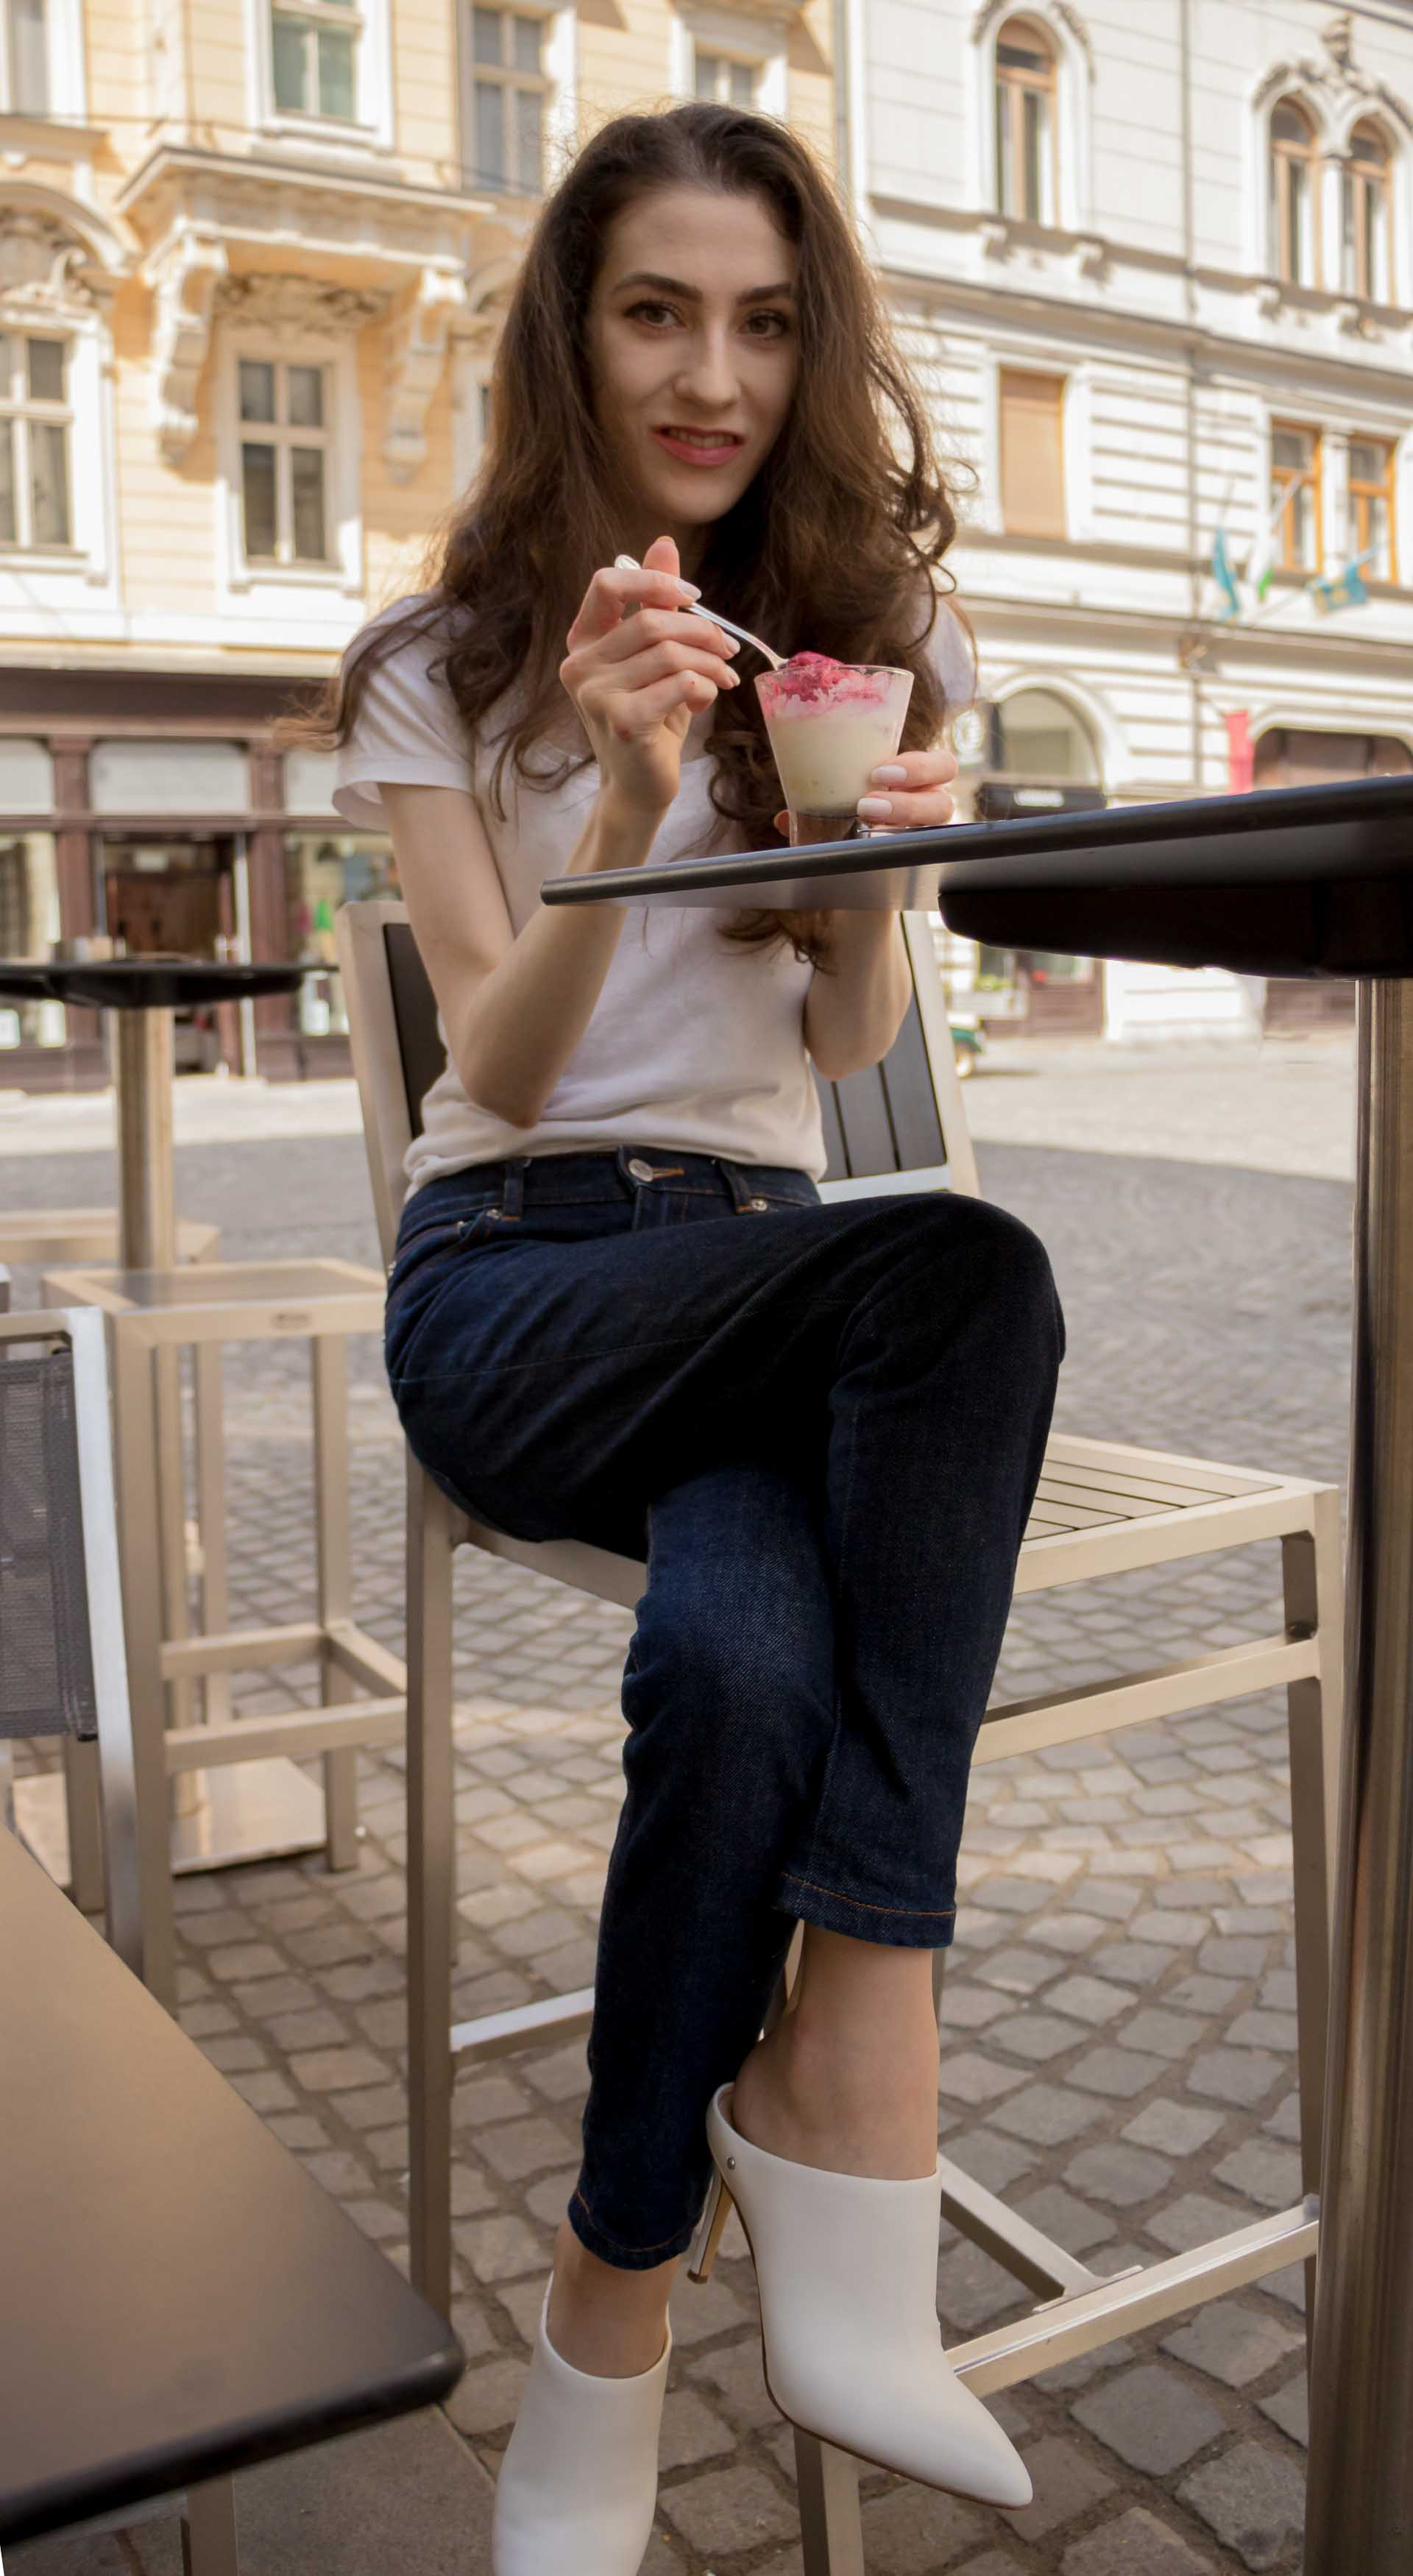 Veronika Lipar Fashion Editor of Brunette from Wall Street dressed in basic summer outfit dark blue tapered jeans from A.P.C., H&M white T-shirt, Nannacay basket bag, white mules and Adam Selman x Le Specs white cat eye Lolita sunglasses eating ice cream